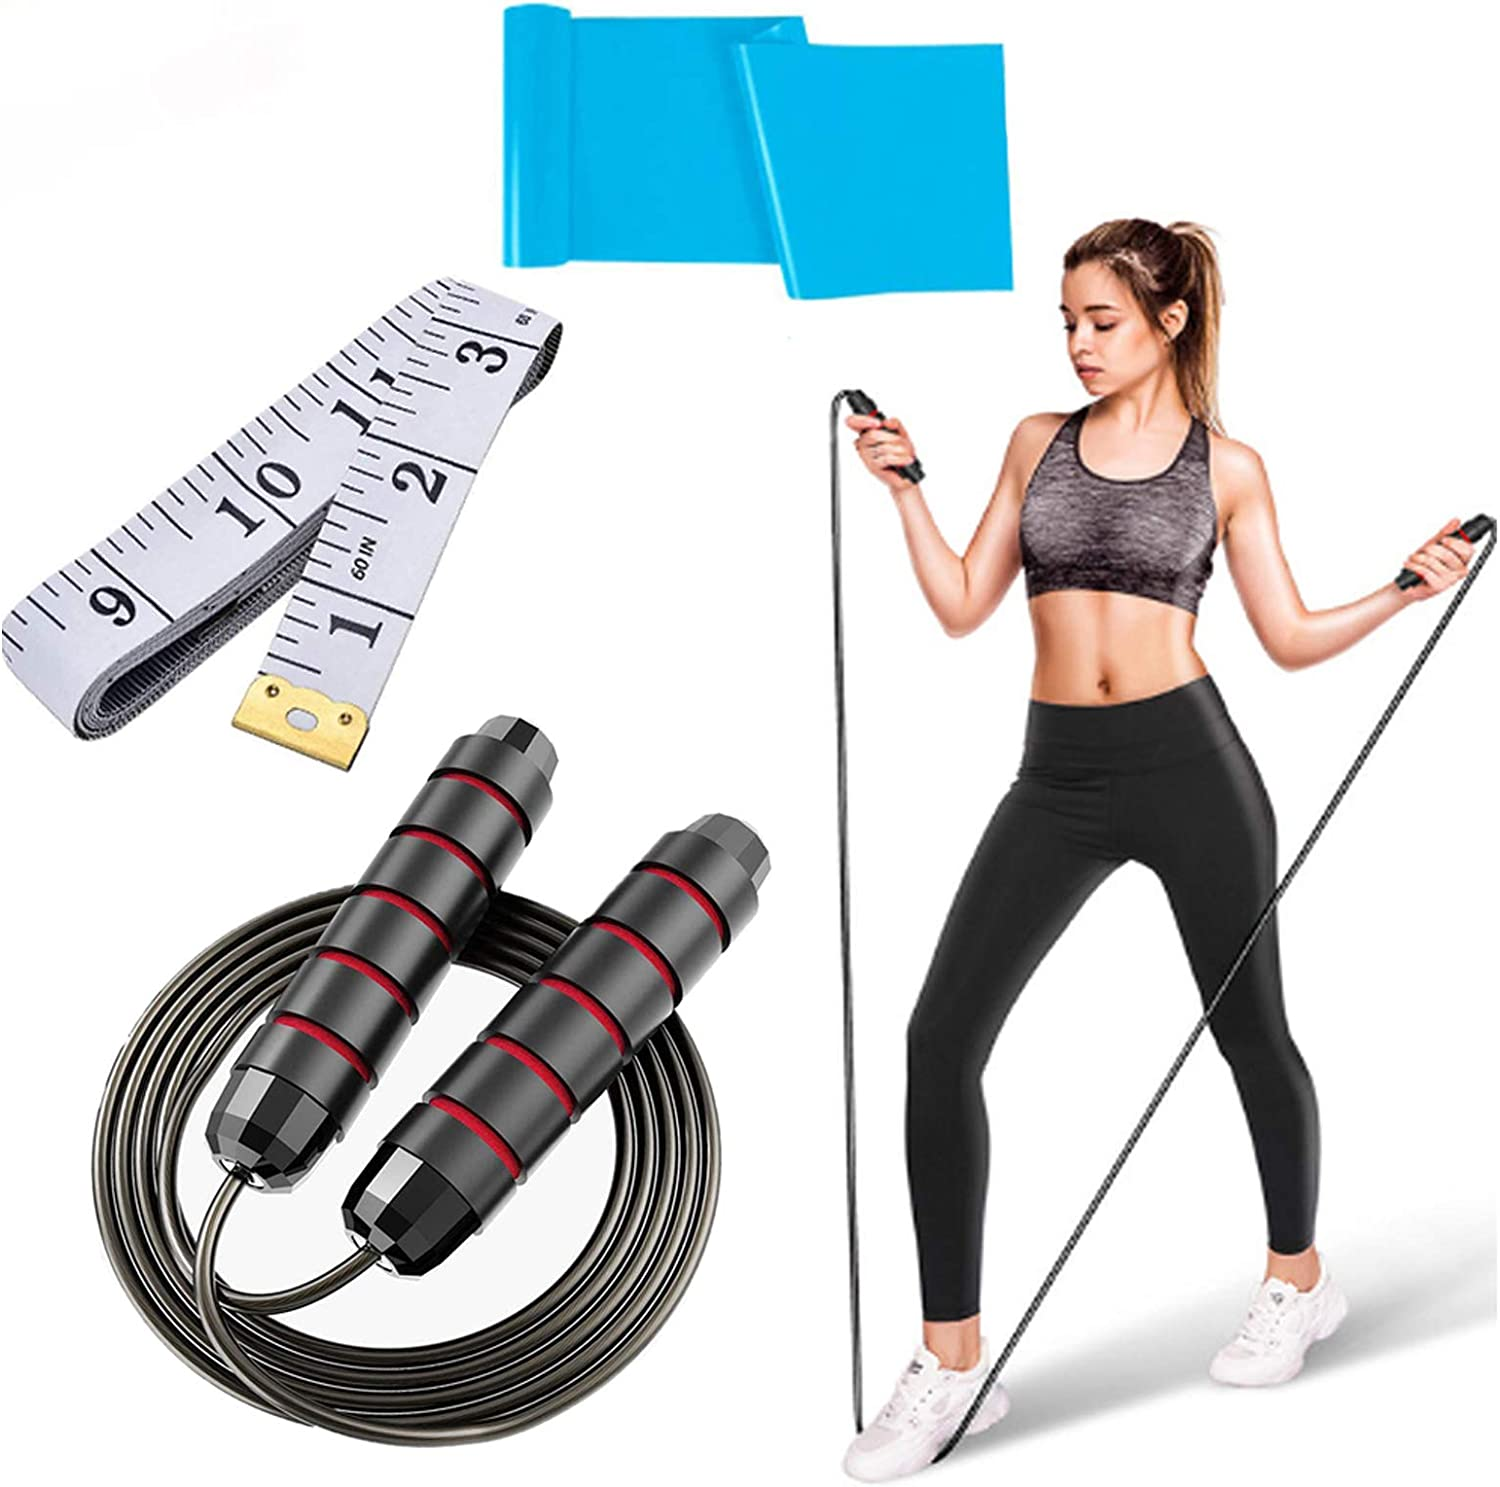 Adjustable Jump Rope for Men//Women//Children Skipping Rope Tangle-Free with Anti-Slip Handles Great for Aerobic Exercise Aessdcan Jump Rope Suitable for Slimming//Work Out//Train//Entertainment